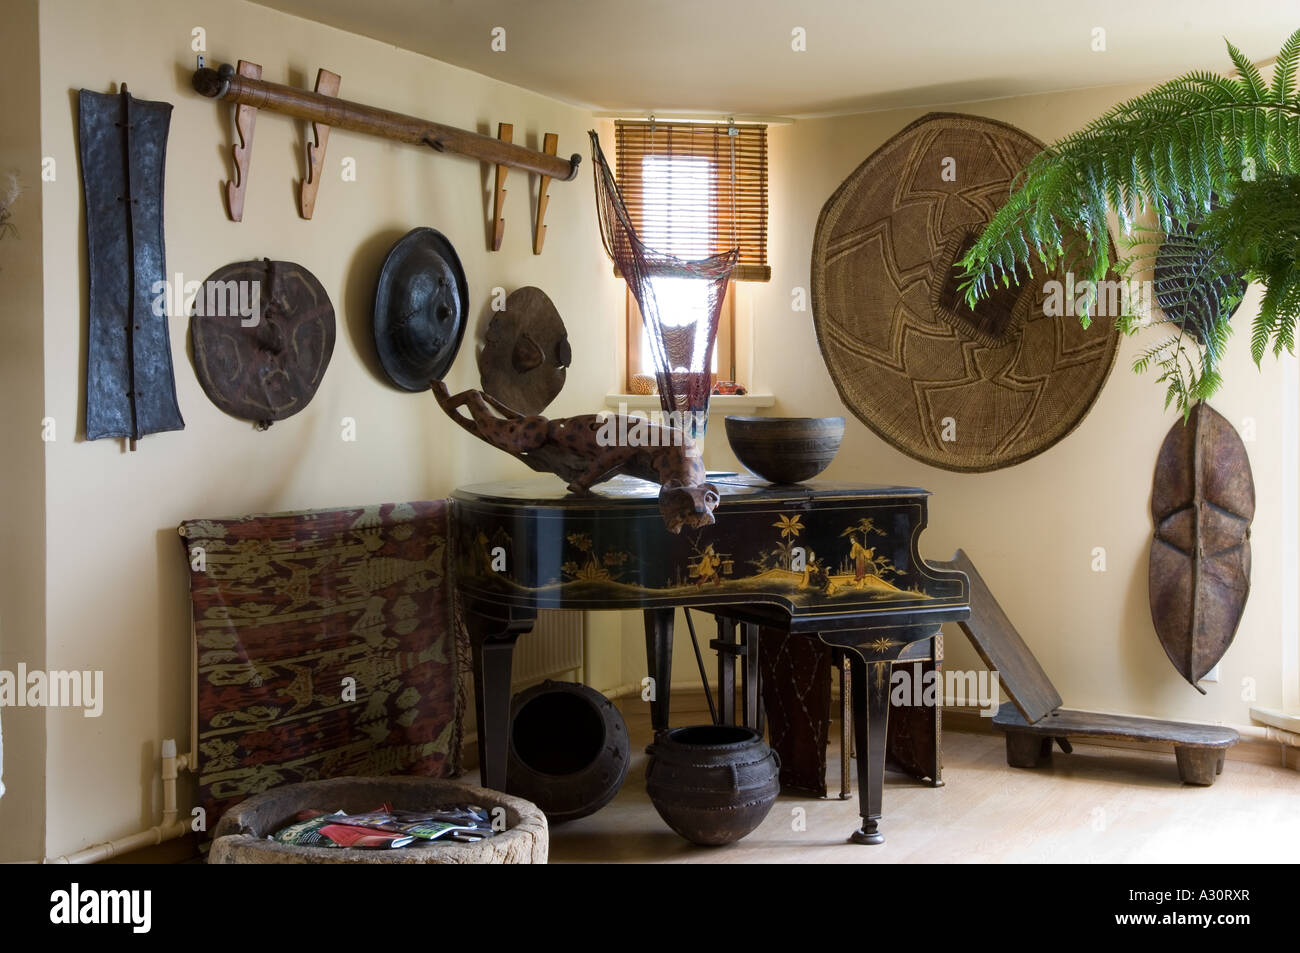 Corner Of A Room With Baby Grand Piano And African Art Objects